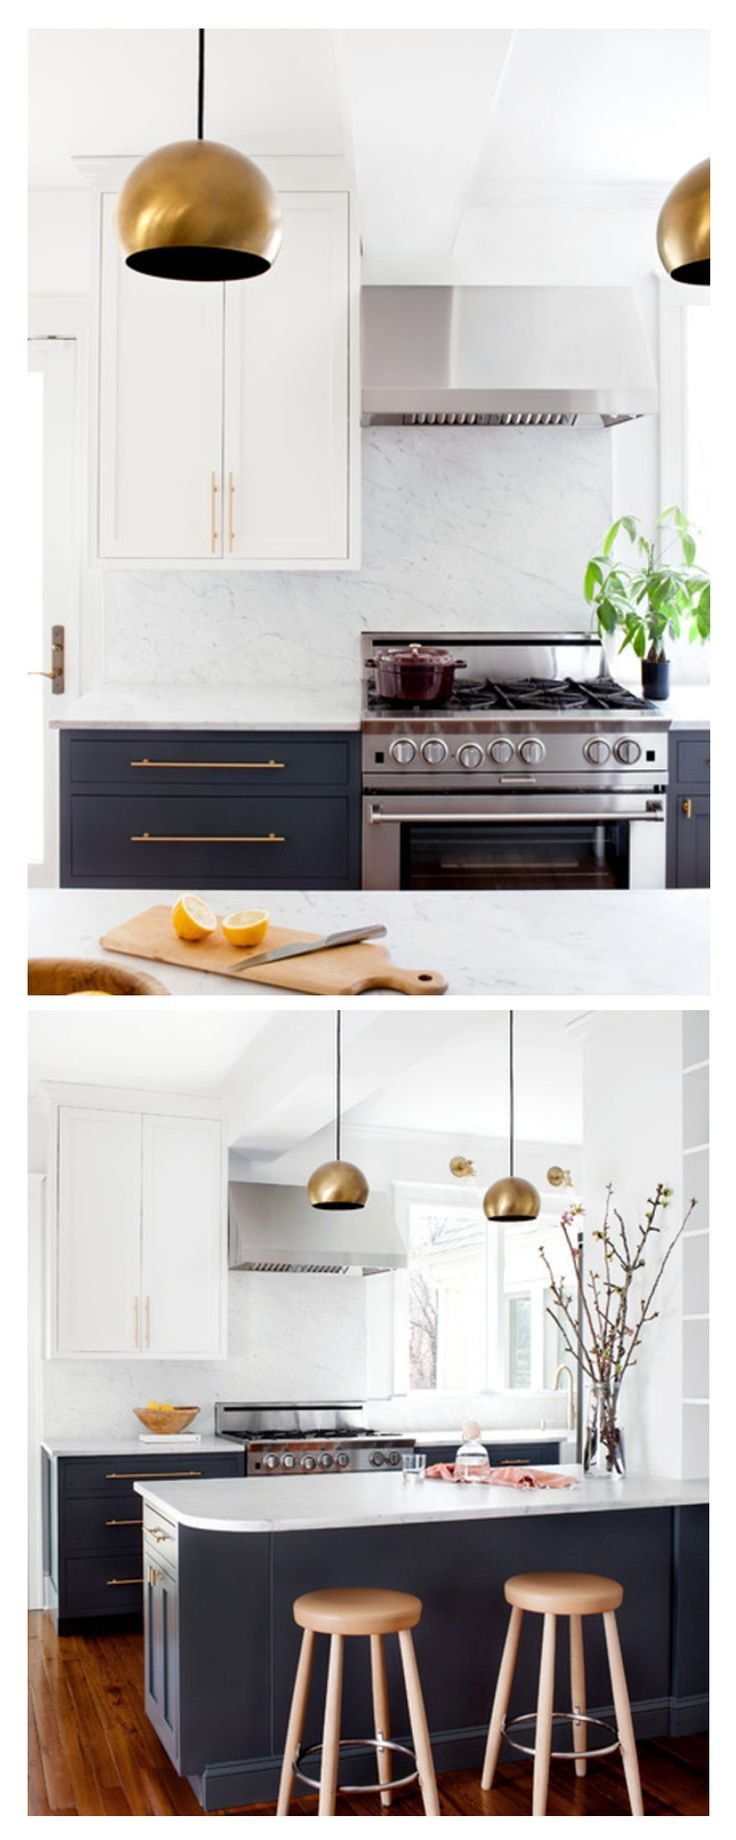 Create A Unique Kitchen Style With Over 750 Colors, 10